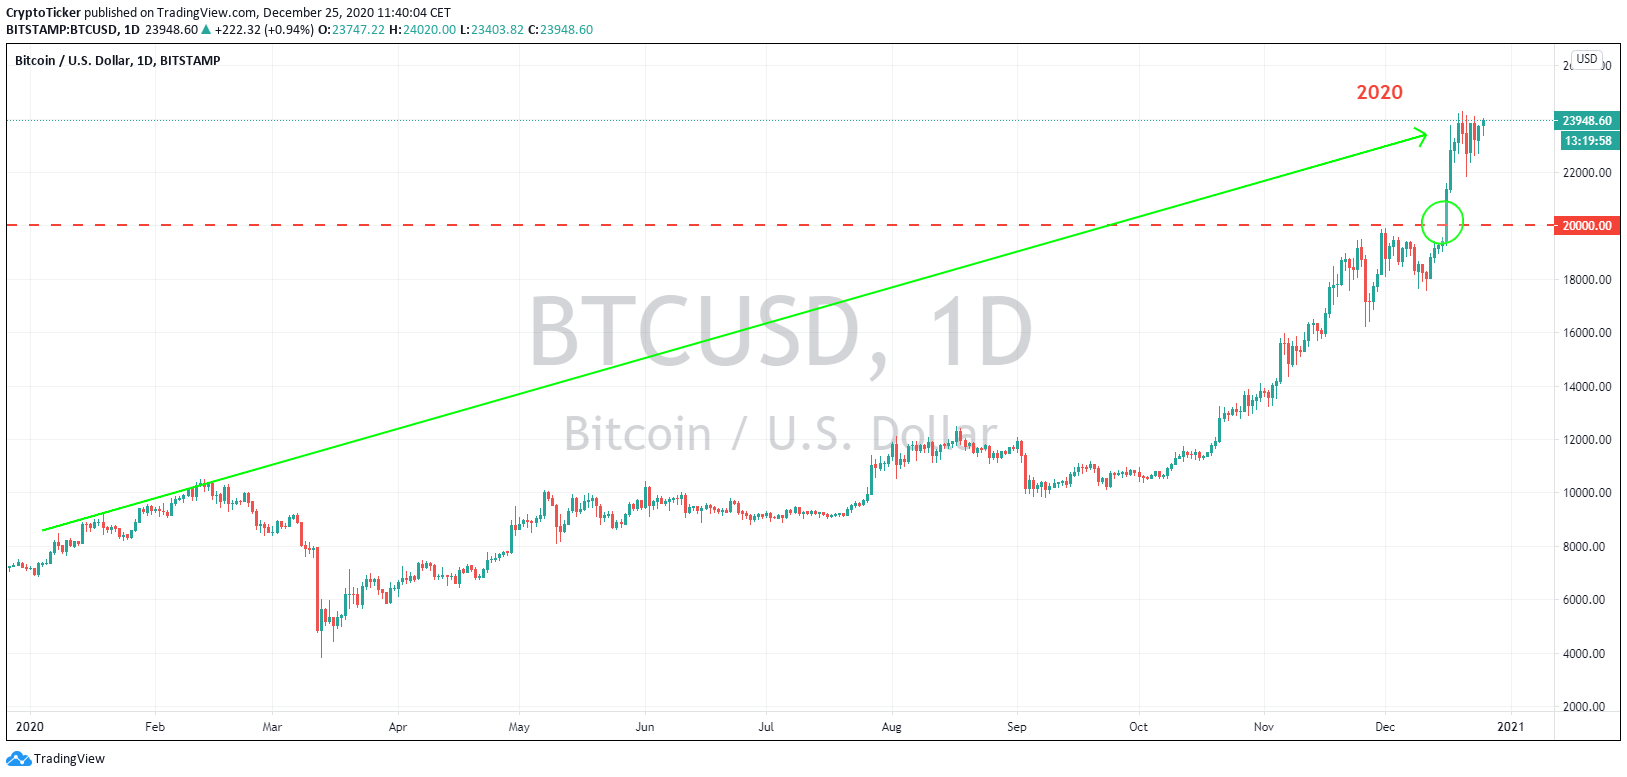 BTC/USD 1-Day chart, Flashback to the year of 2020